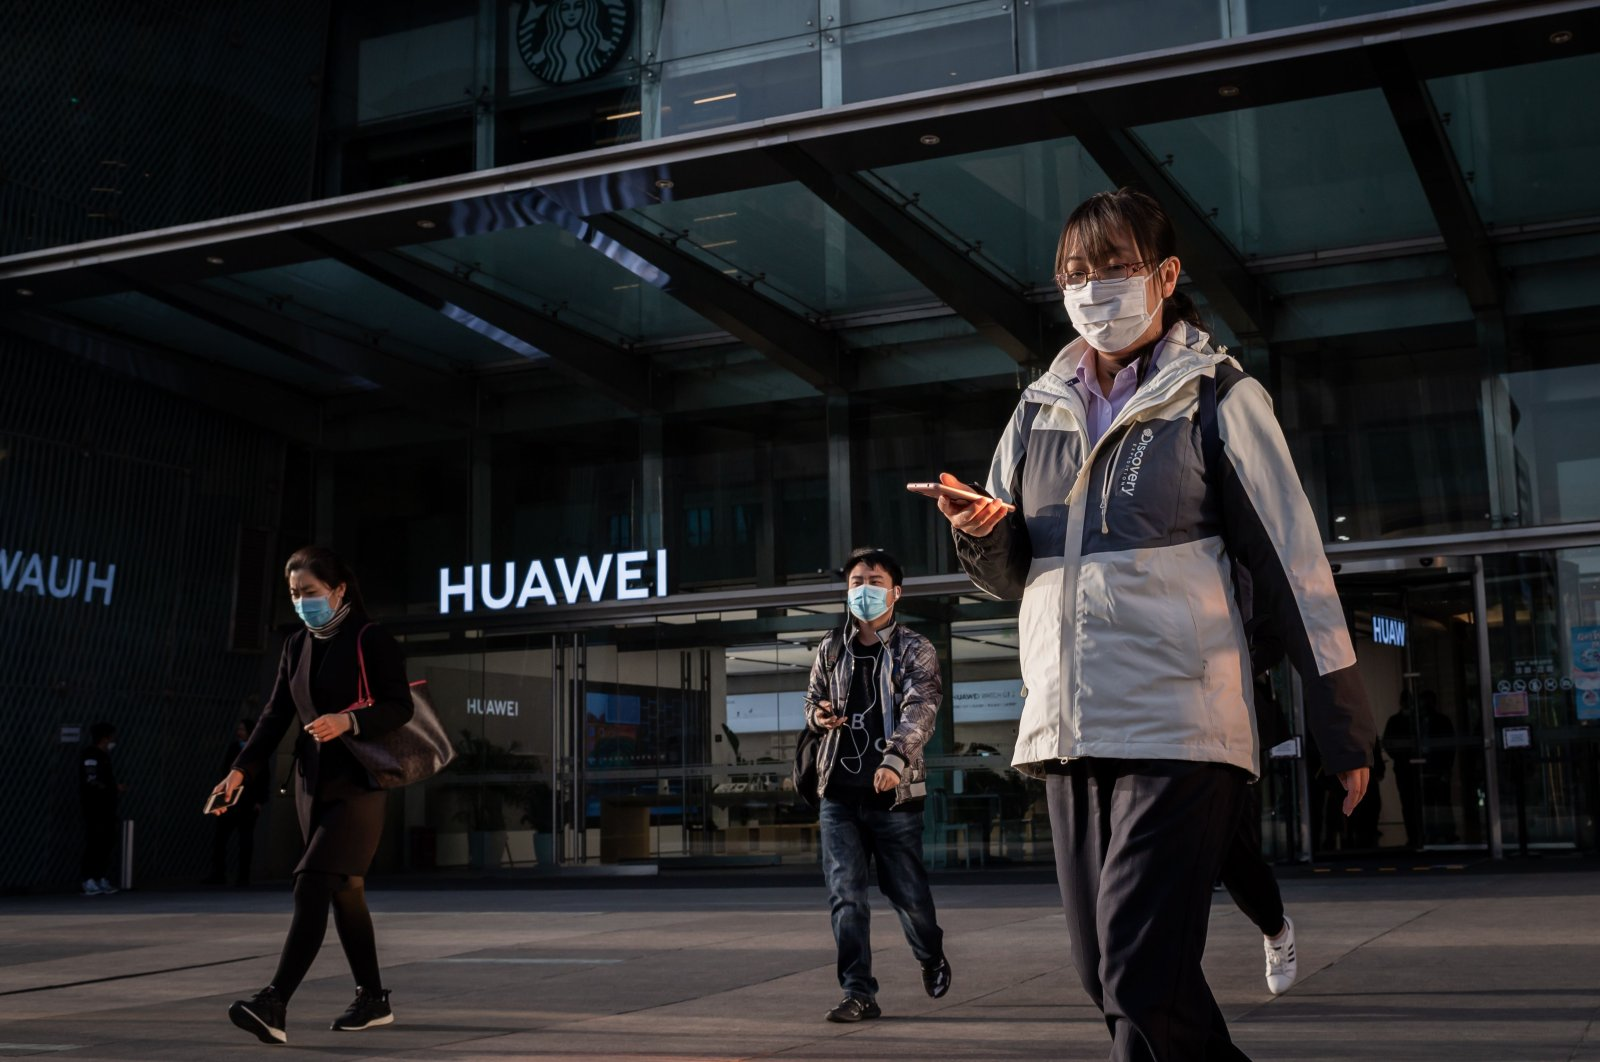 People wearing face masks as a preventive measure against COVID-19 walk outside a shopping mall past a Huawei shop in Beijing, Wednesday, April 1, 2020. (AFP Photo)